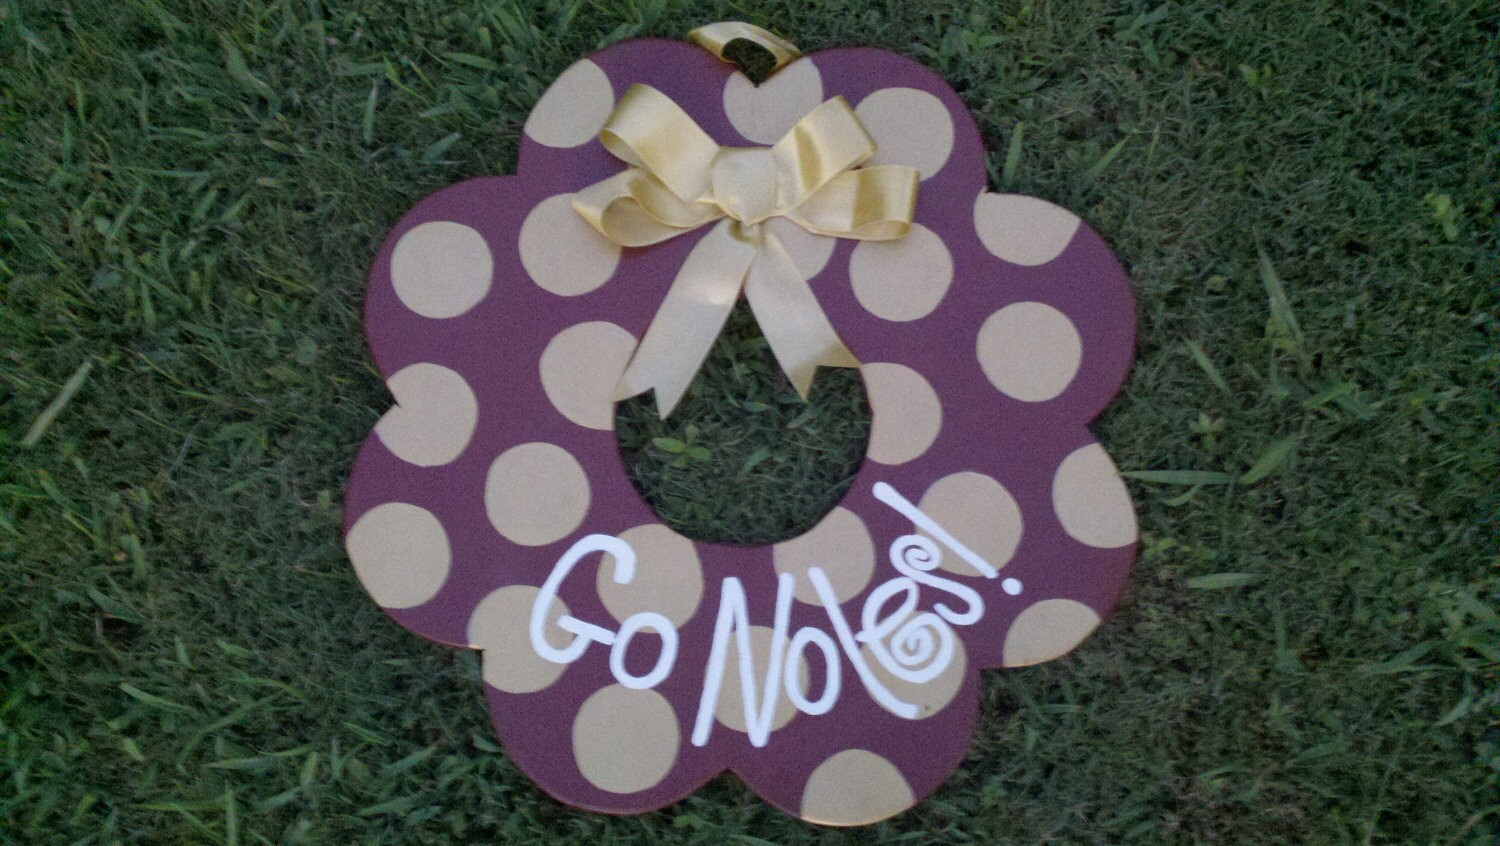 Hand-painted Wooden Team of Your Choice Wreath - Florida State Seminoles Go Noles